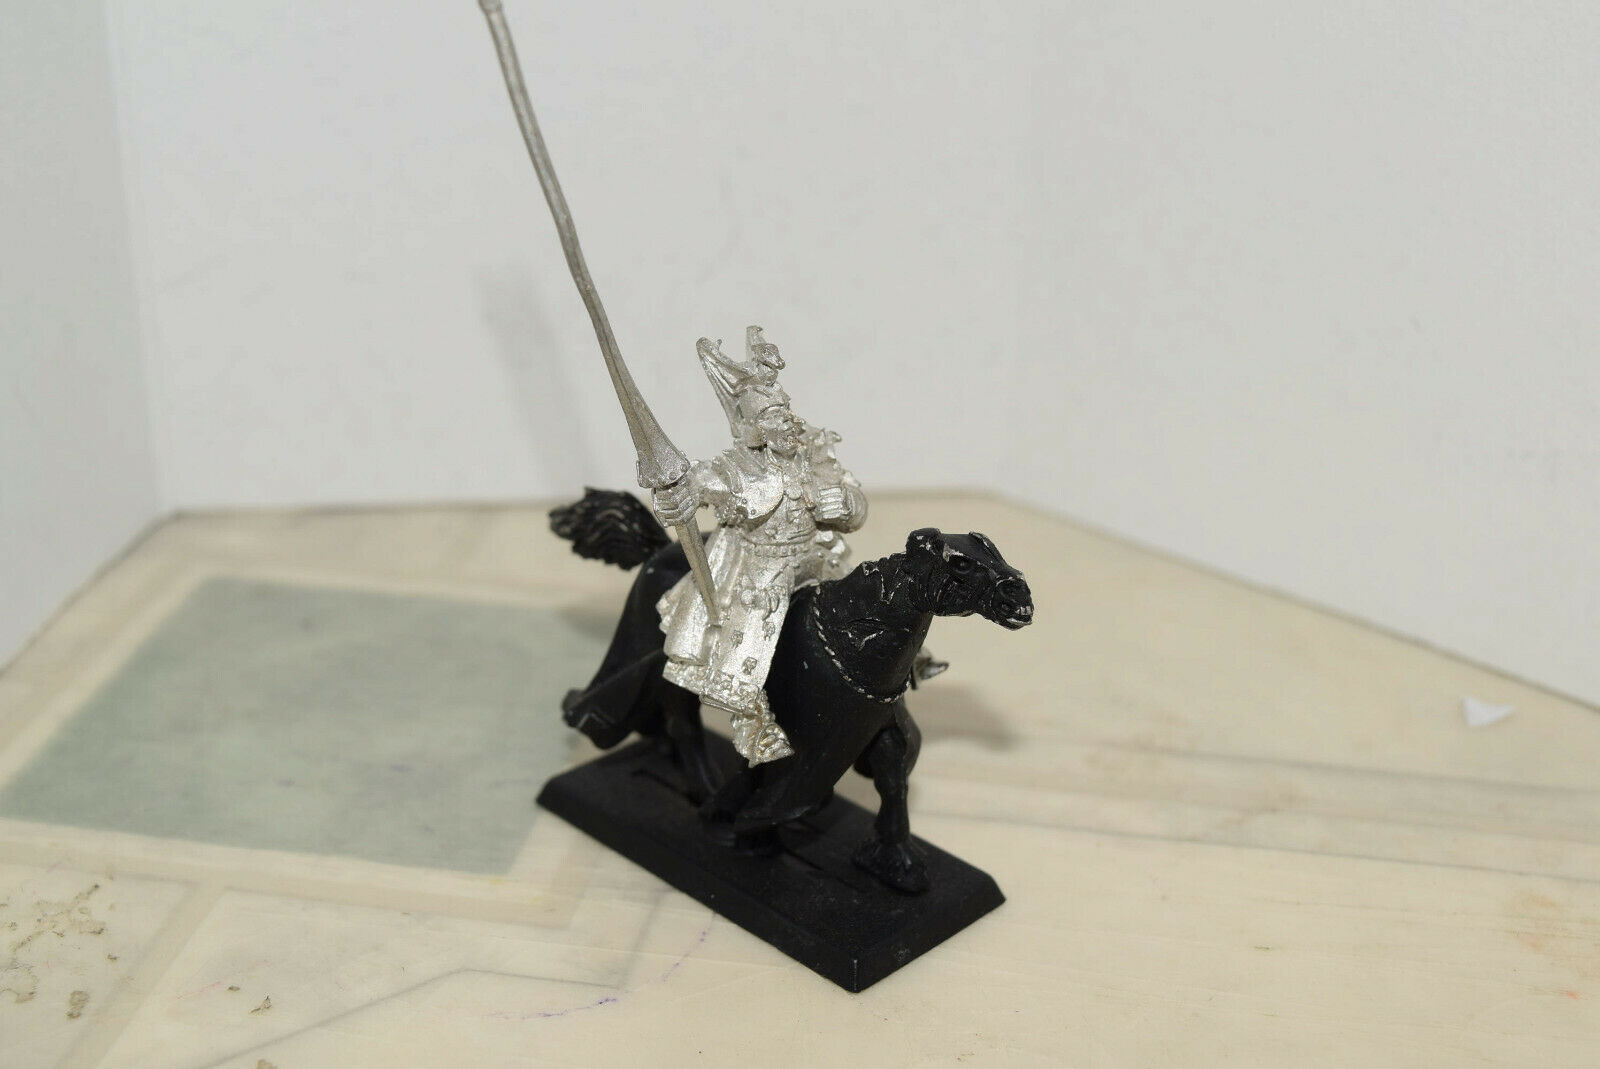 Warhammer Undead Vampire Counts Counts Counts Unreleased Blood Dragon Vampire Lord Mounted b27394